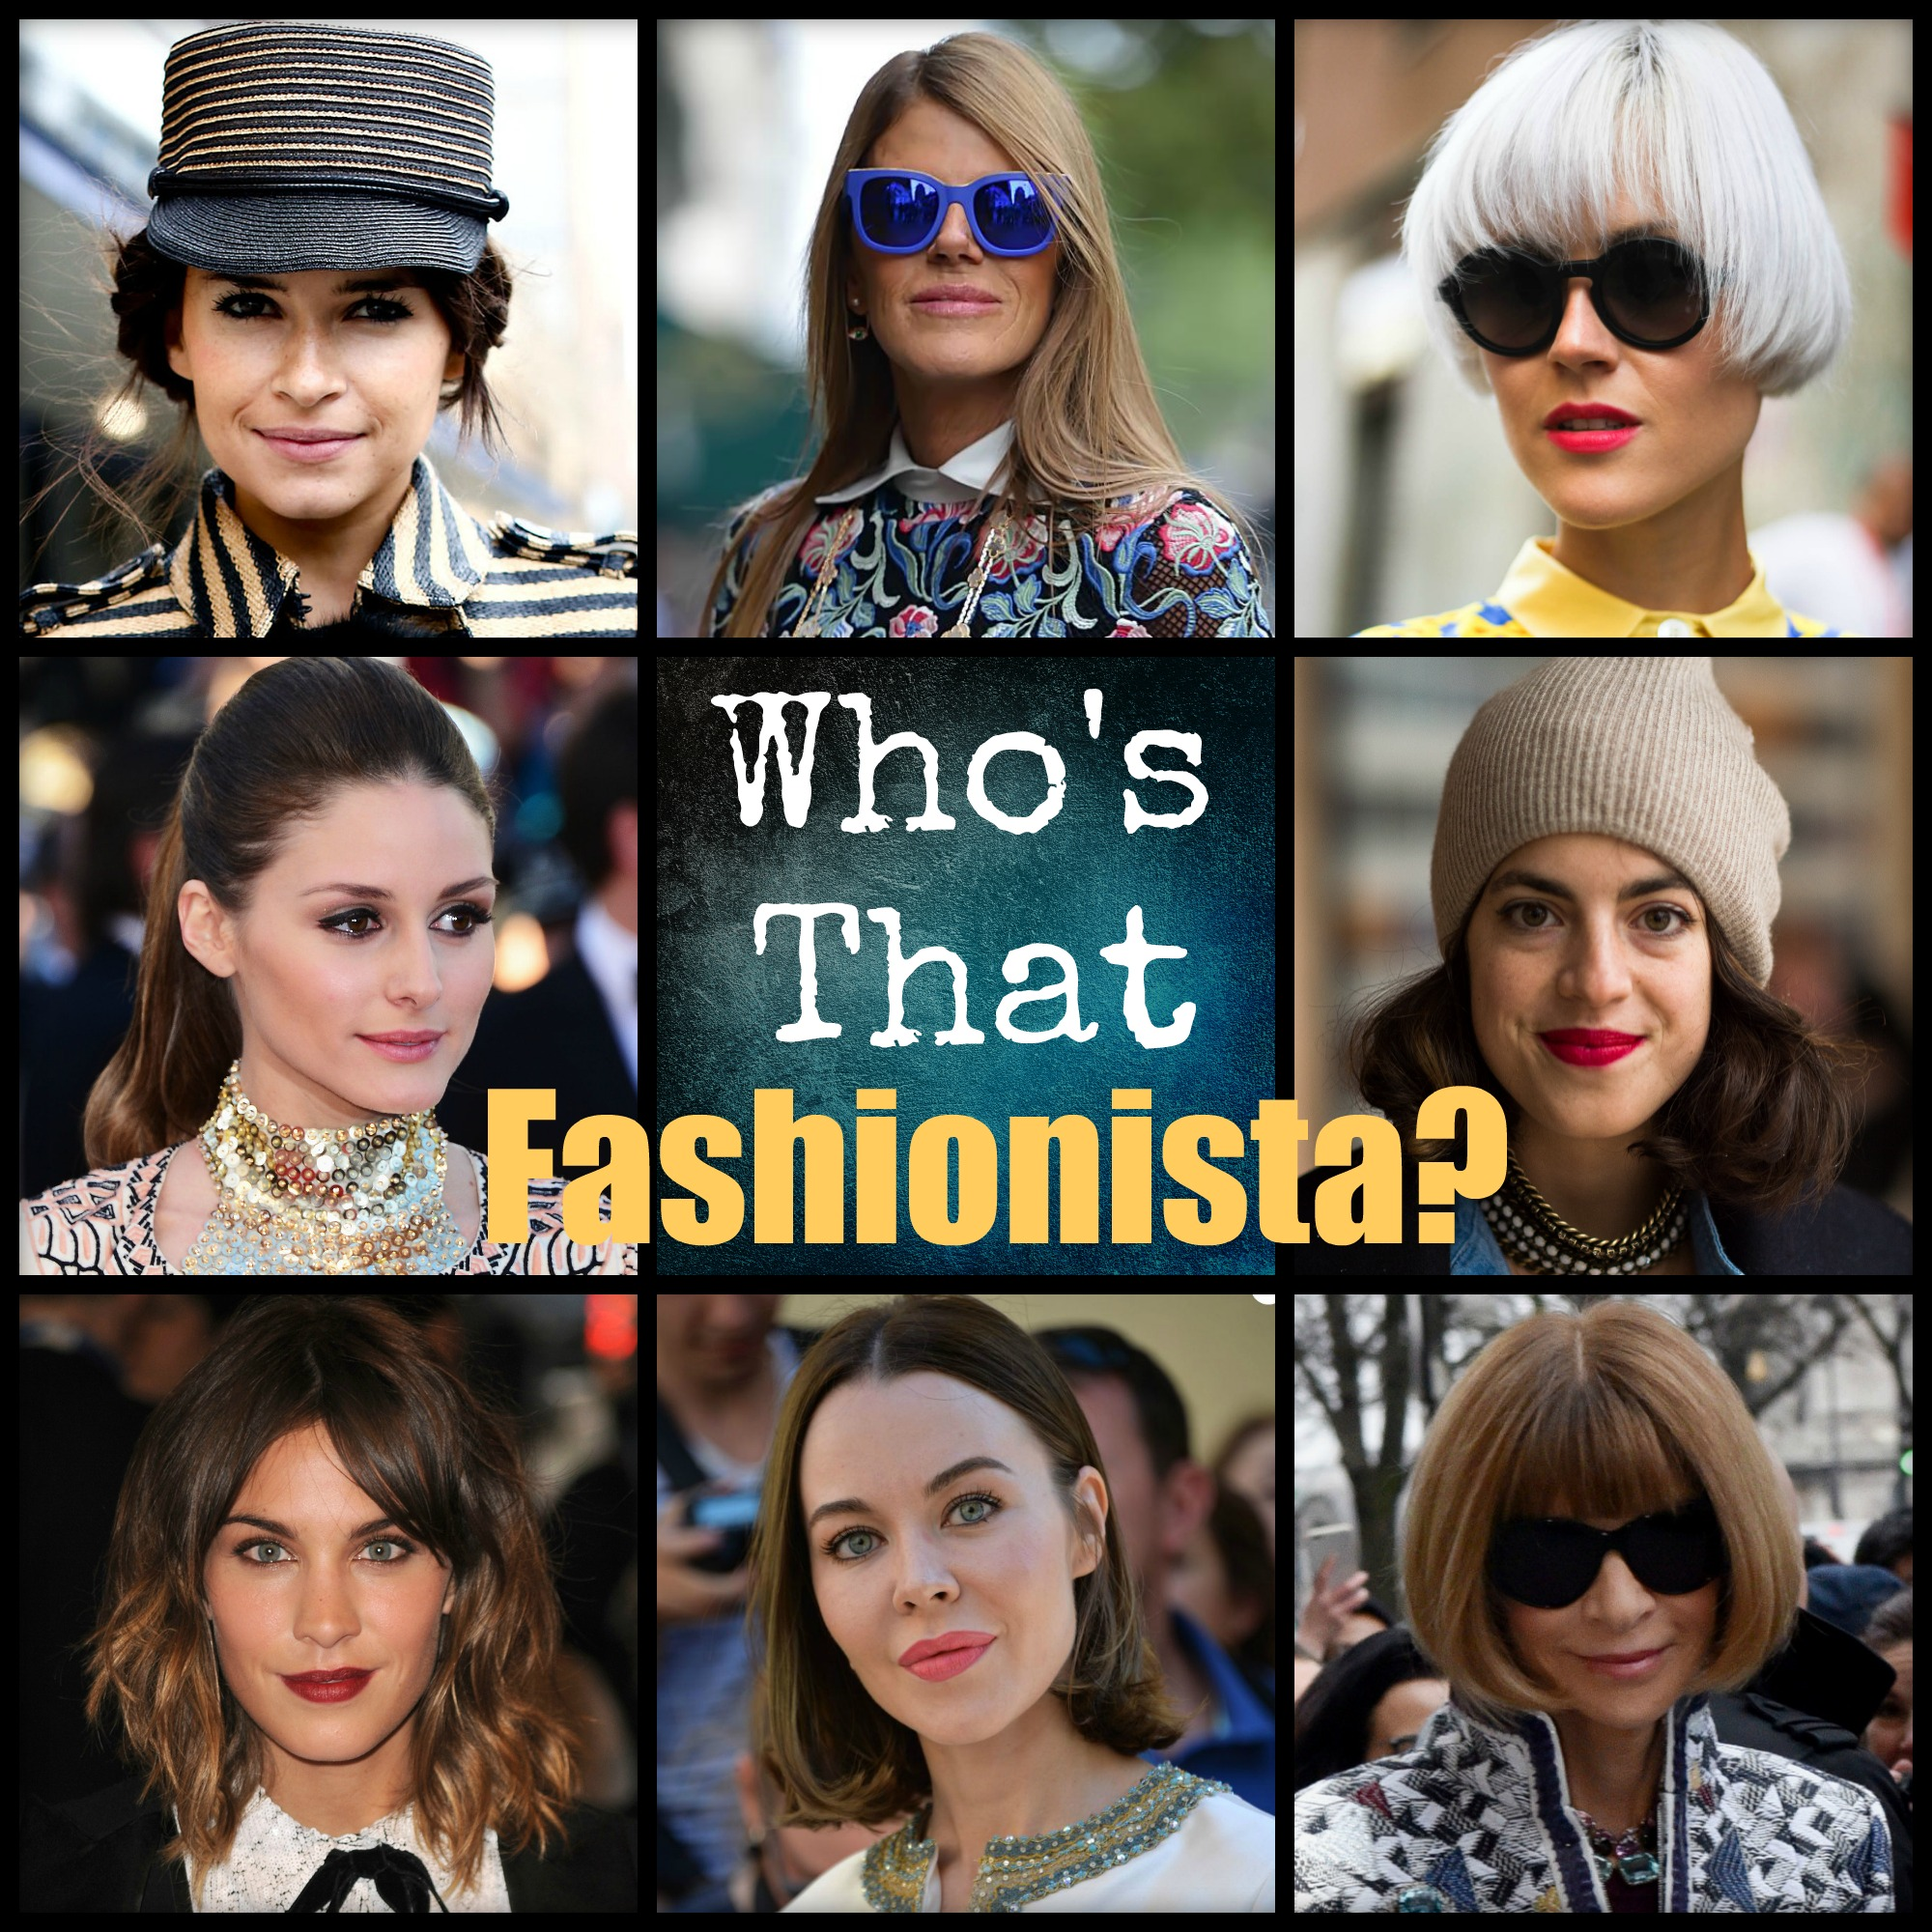 WHO'S THAT FASHIONISTA?